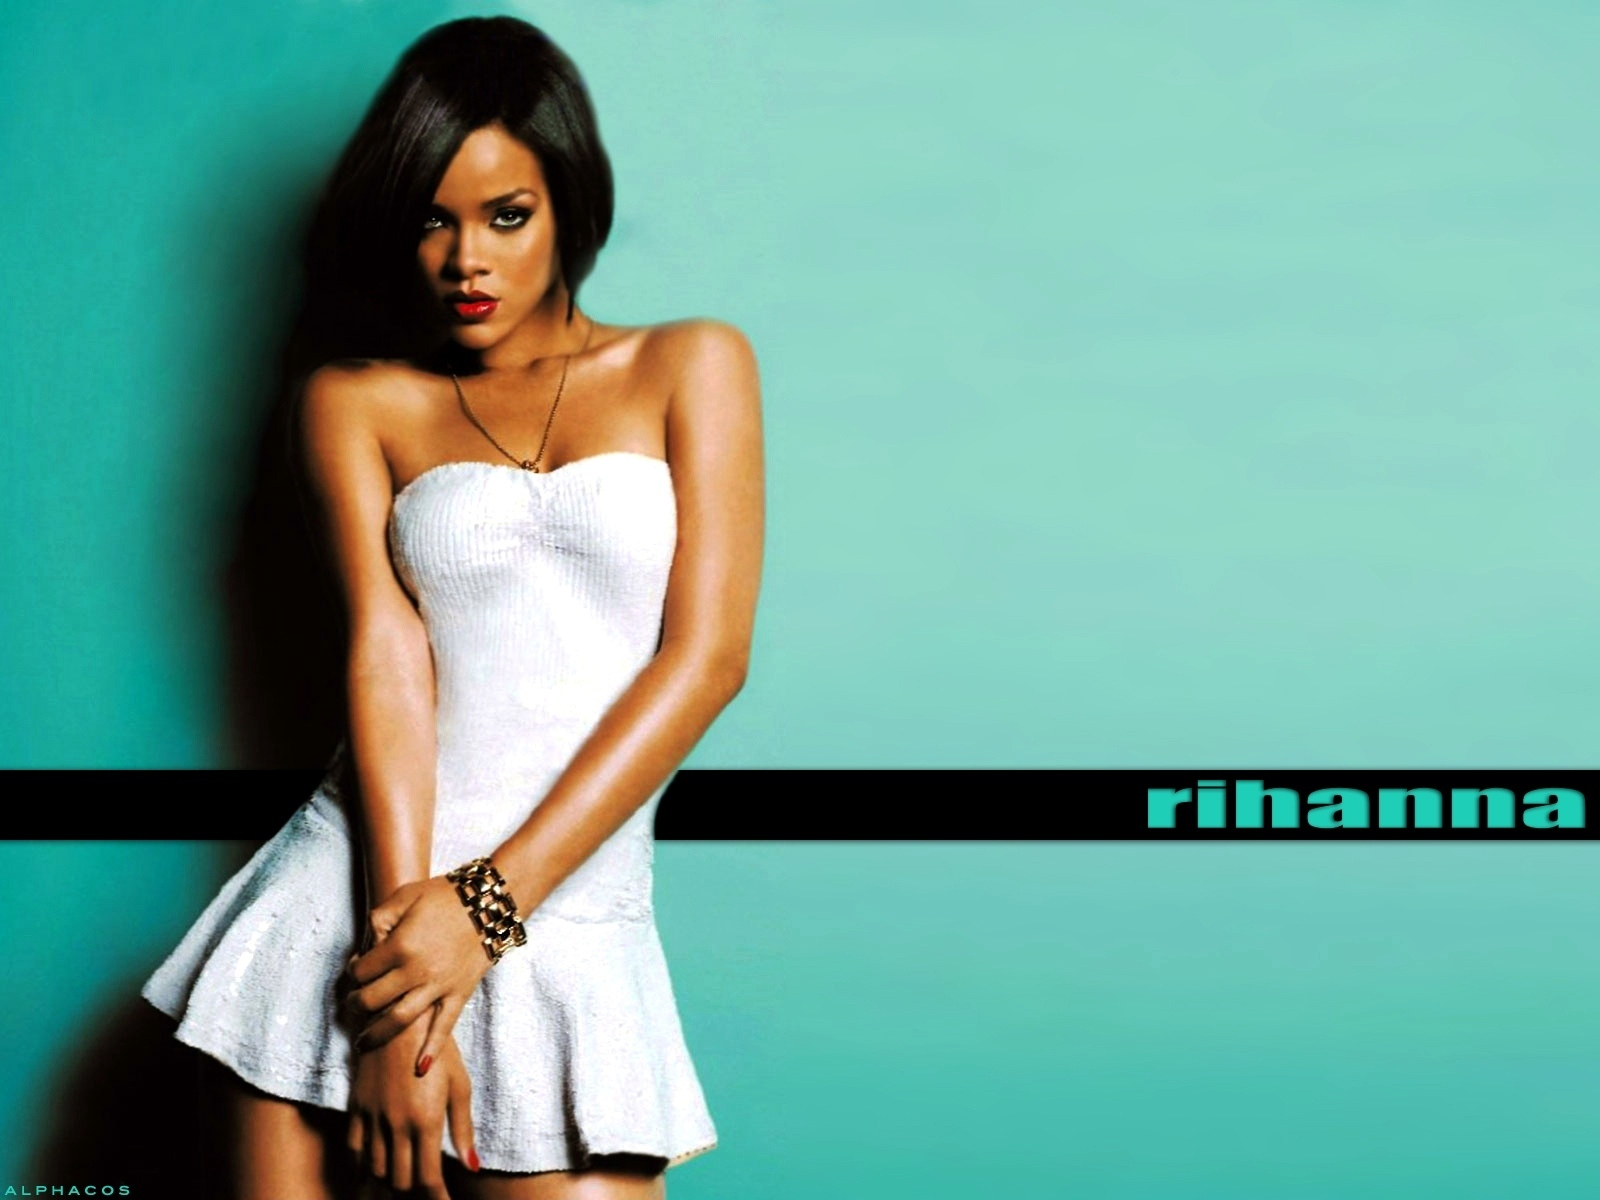 Rihanna 9 Cool Hd Wallpaper